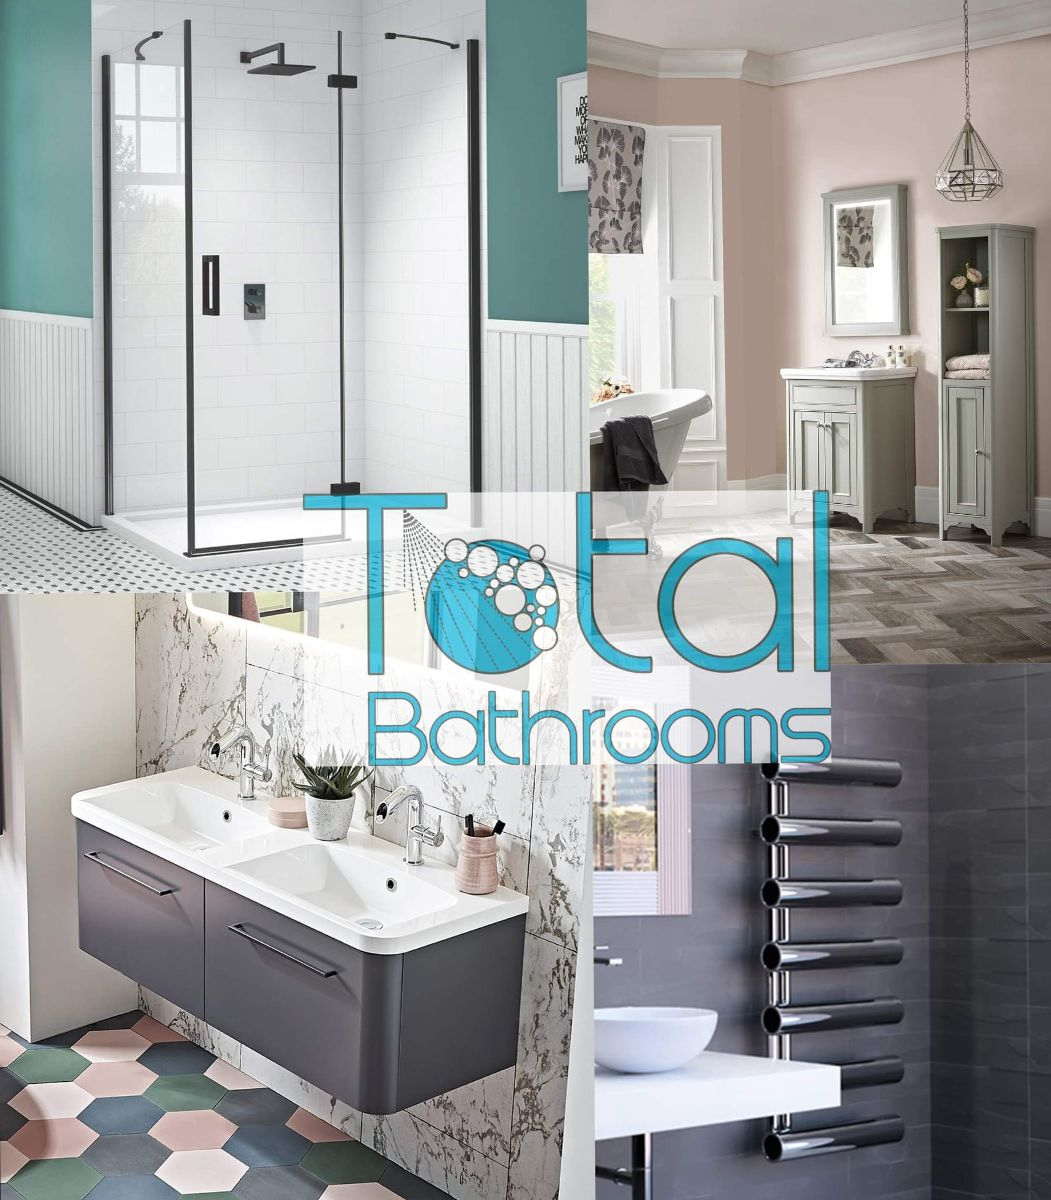 test Twitter Media - Total Bathrooms January Sale Now On - https://t.co/zjykaUv30U Up to 80% off RRP on factory seconds and other great savings. Pop down to the showroom to take a look. https://t.co/pQpELuXRm3